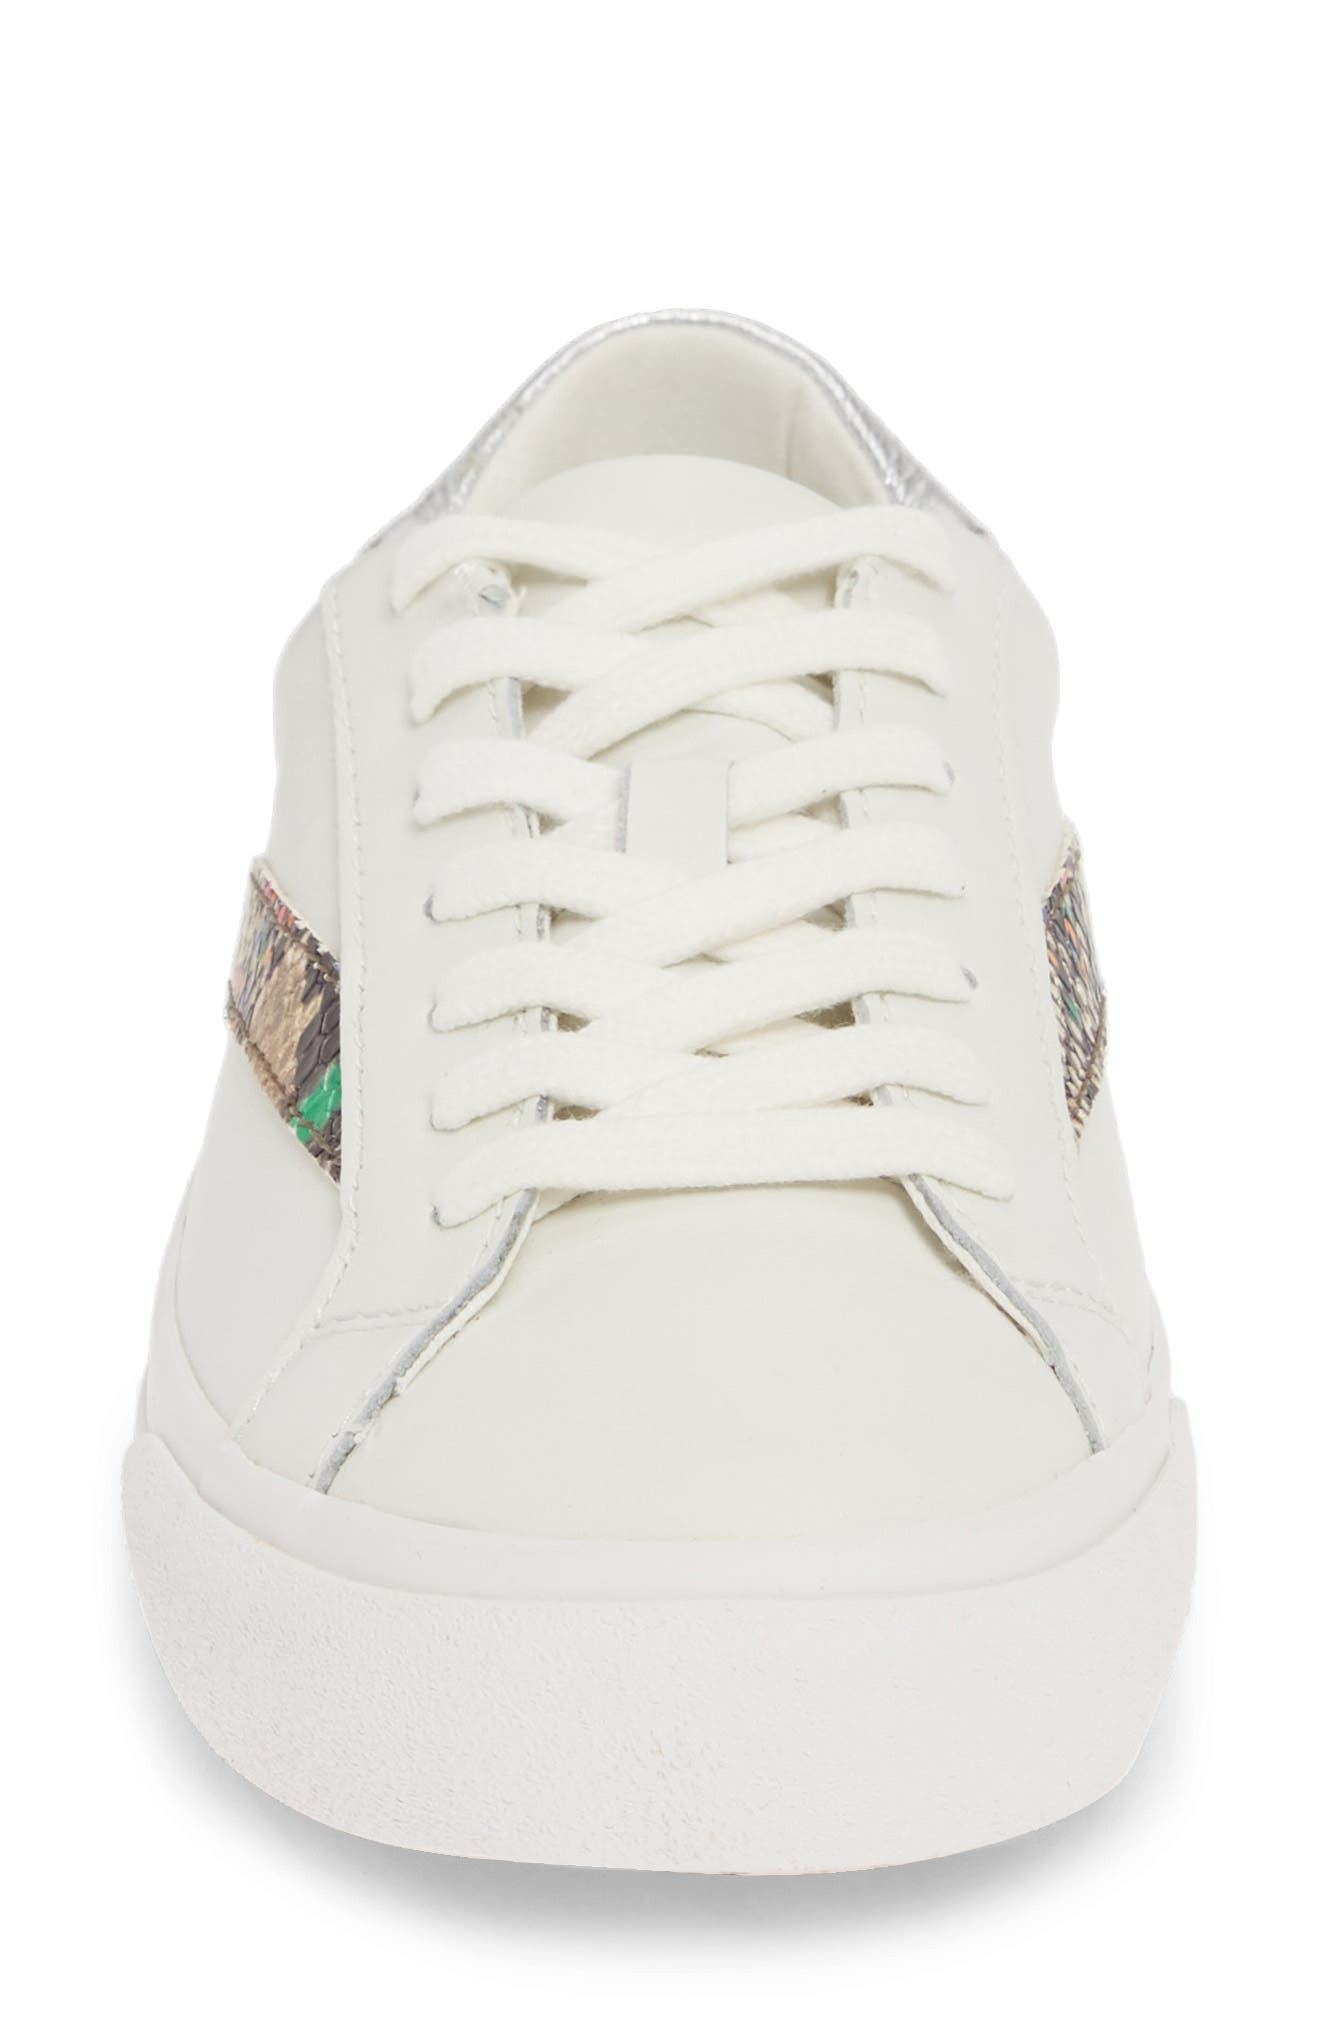 MADEWELL, Delia Sneaker, Alternate thumbnail 5, color, LIGHT UMBER MULTI